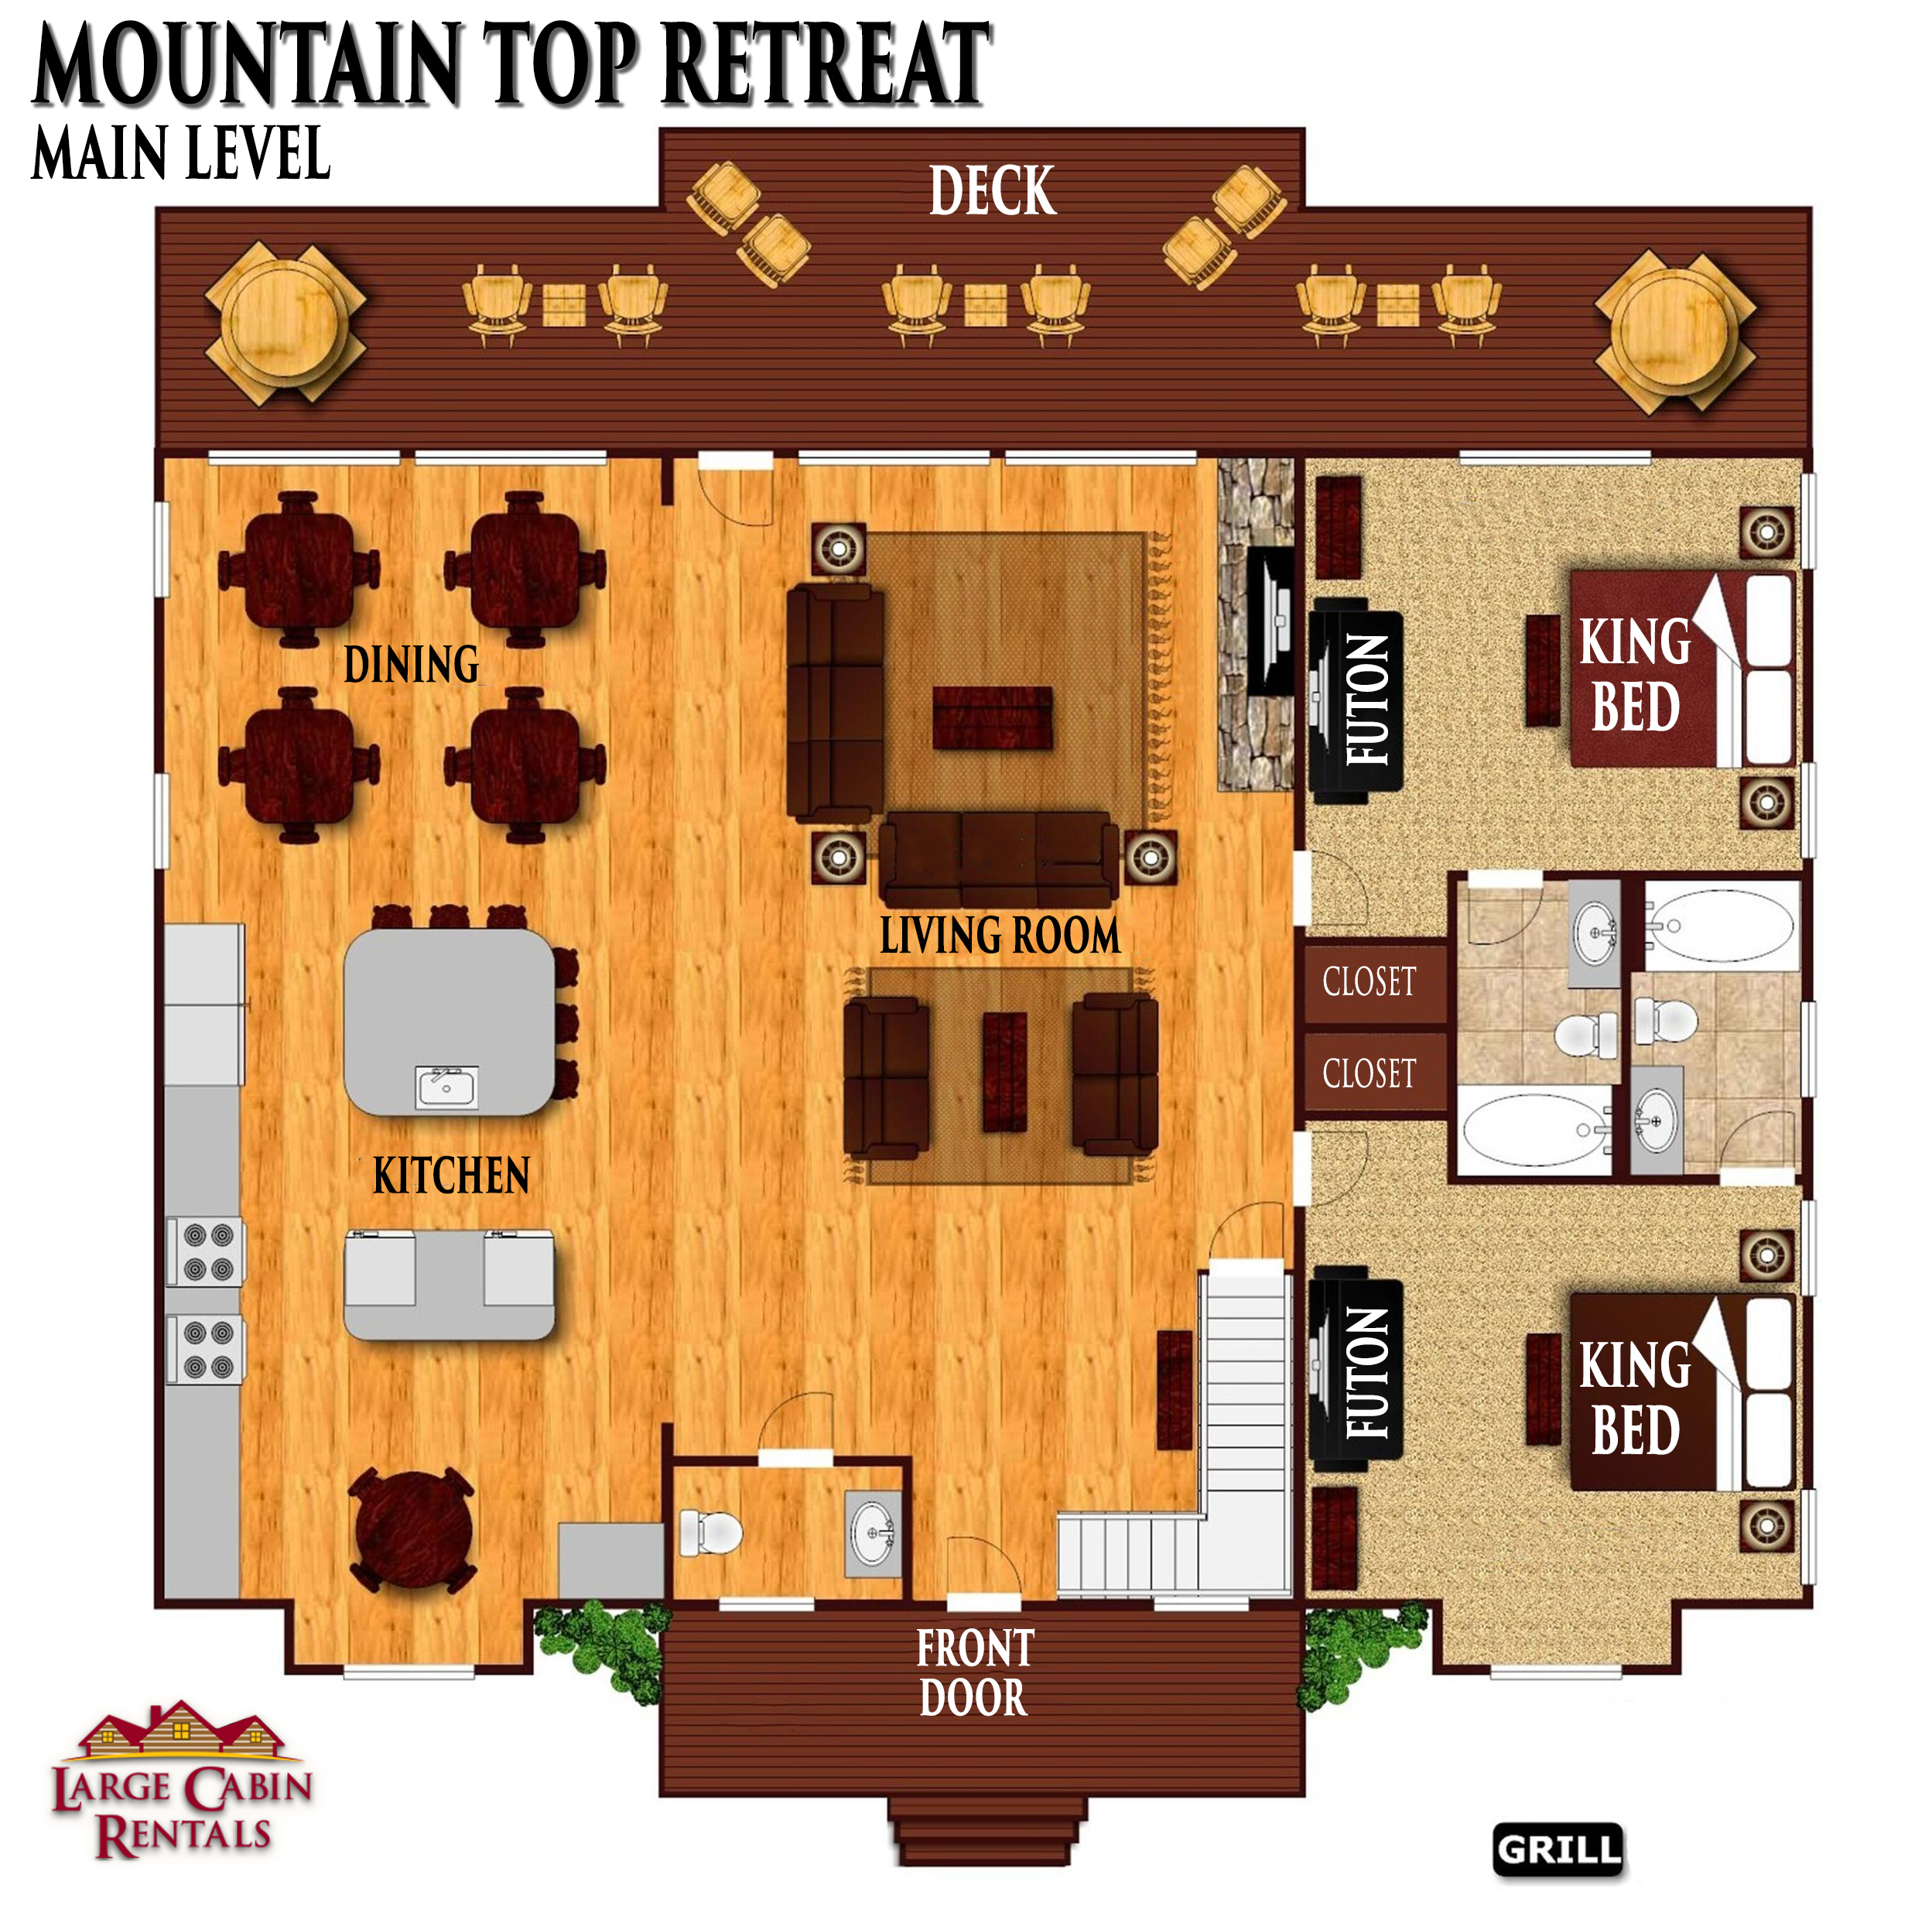 8 Bedroom Sleeps 40 MOUNTAIN TOP RETREAT by Large Cabin Rentals